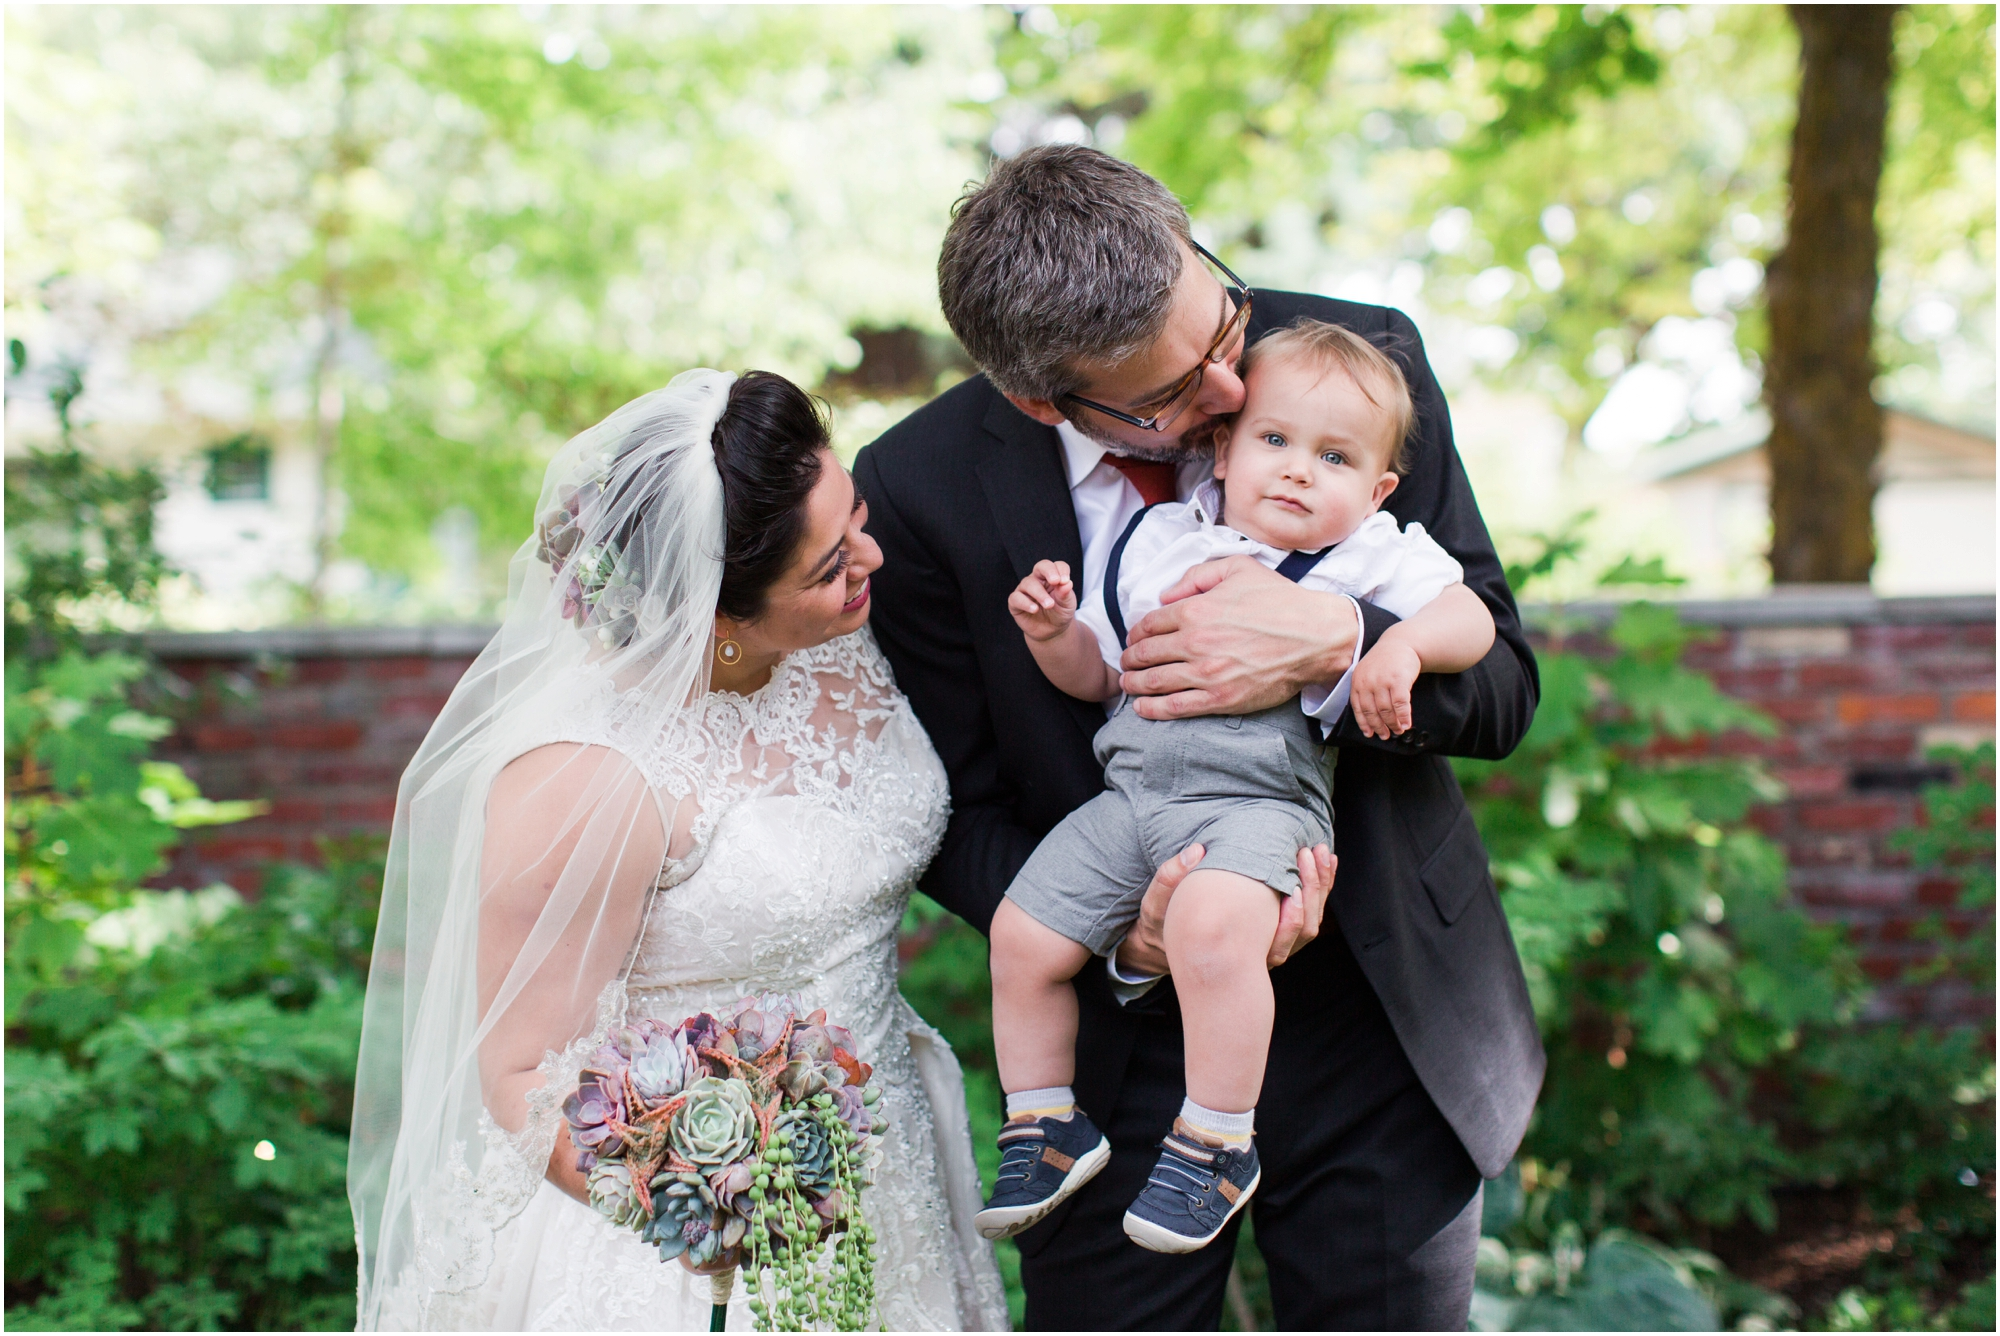 Garden wedding in Ellensburg, WA. Photos by Briana Calderon Photography based in the greater Seattle-Tacoma Area._1332.jpg